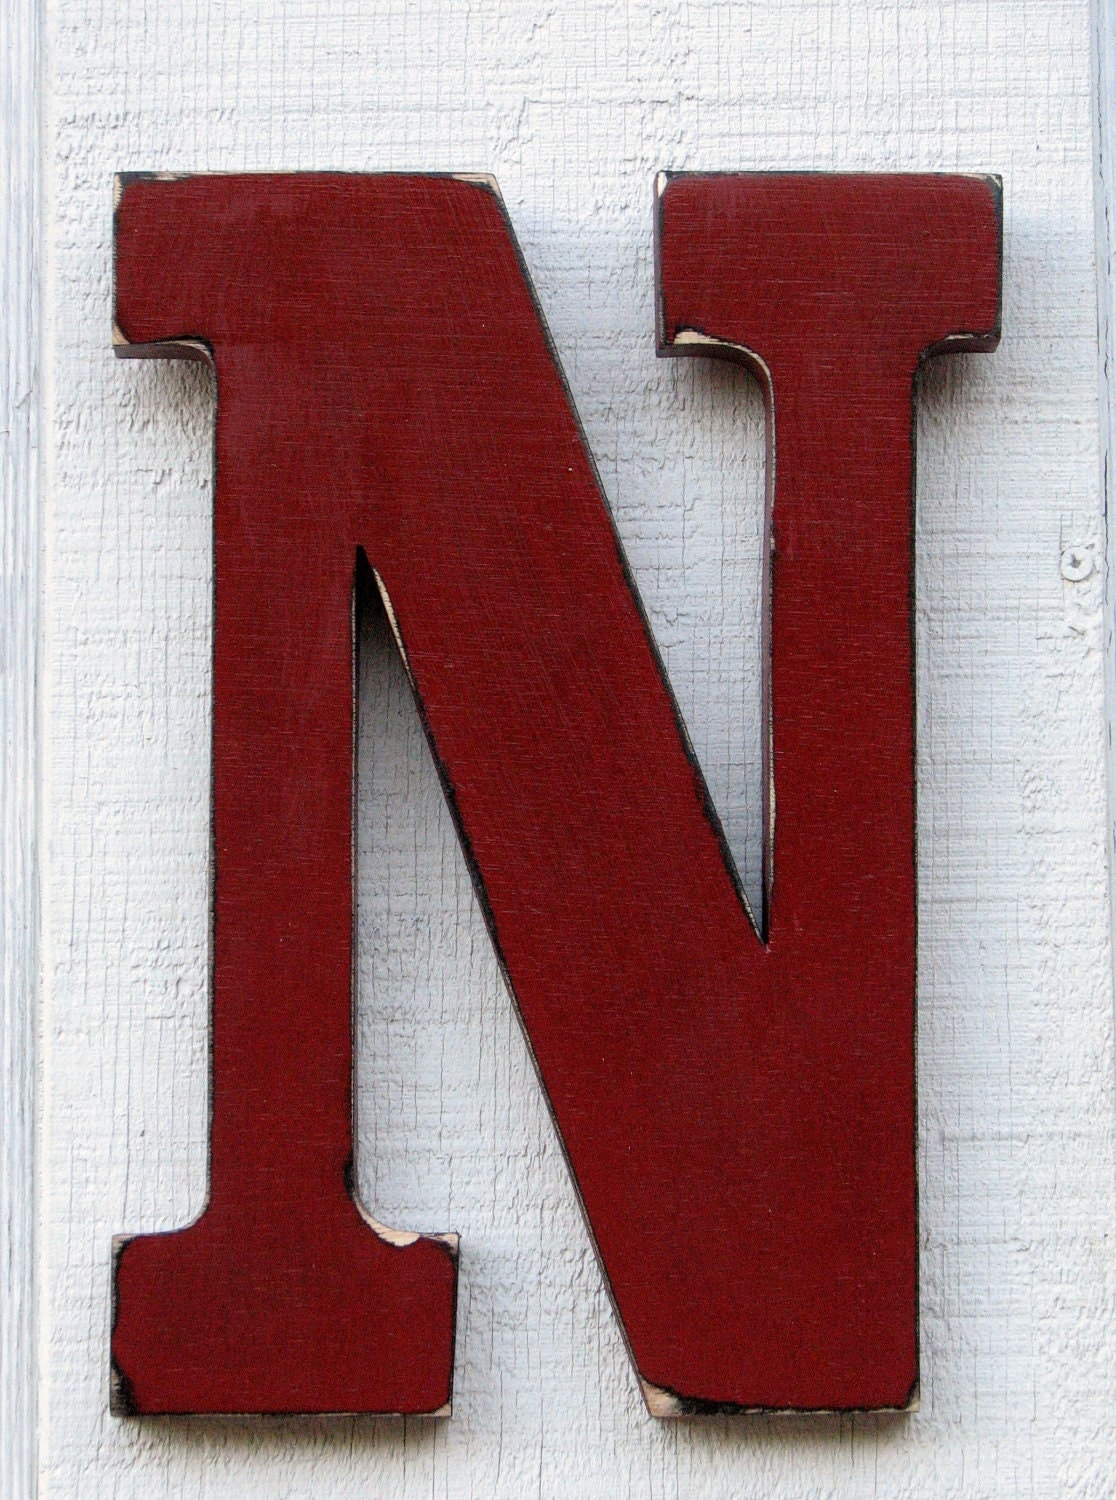 Large Wooden Letter N 12 Inch Tall Distressed By